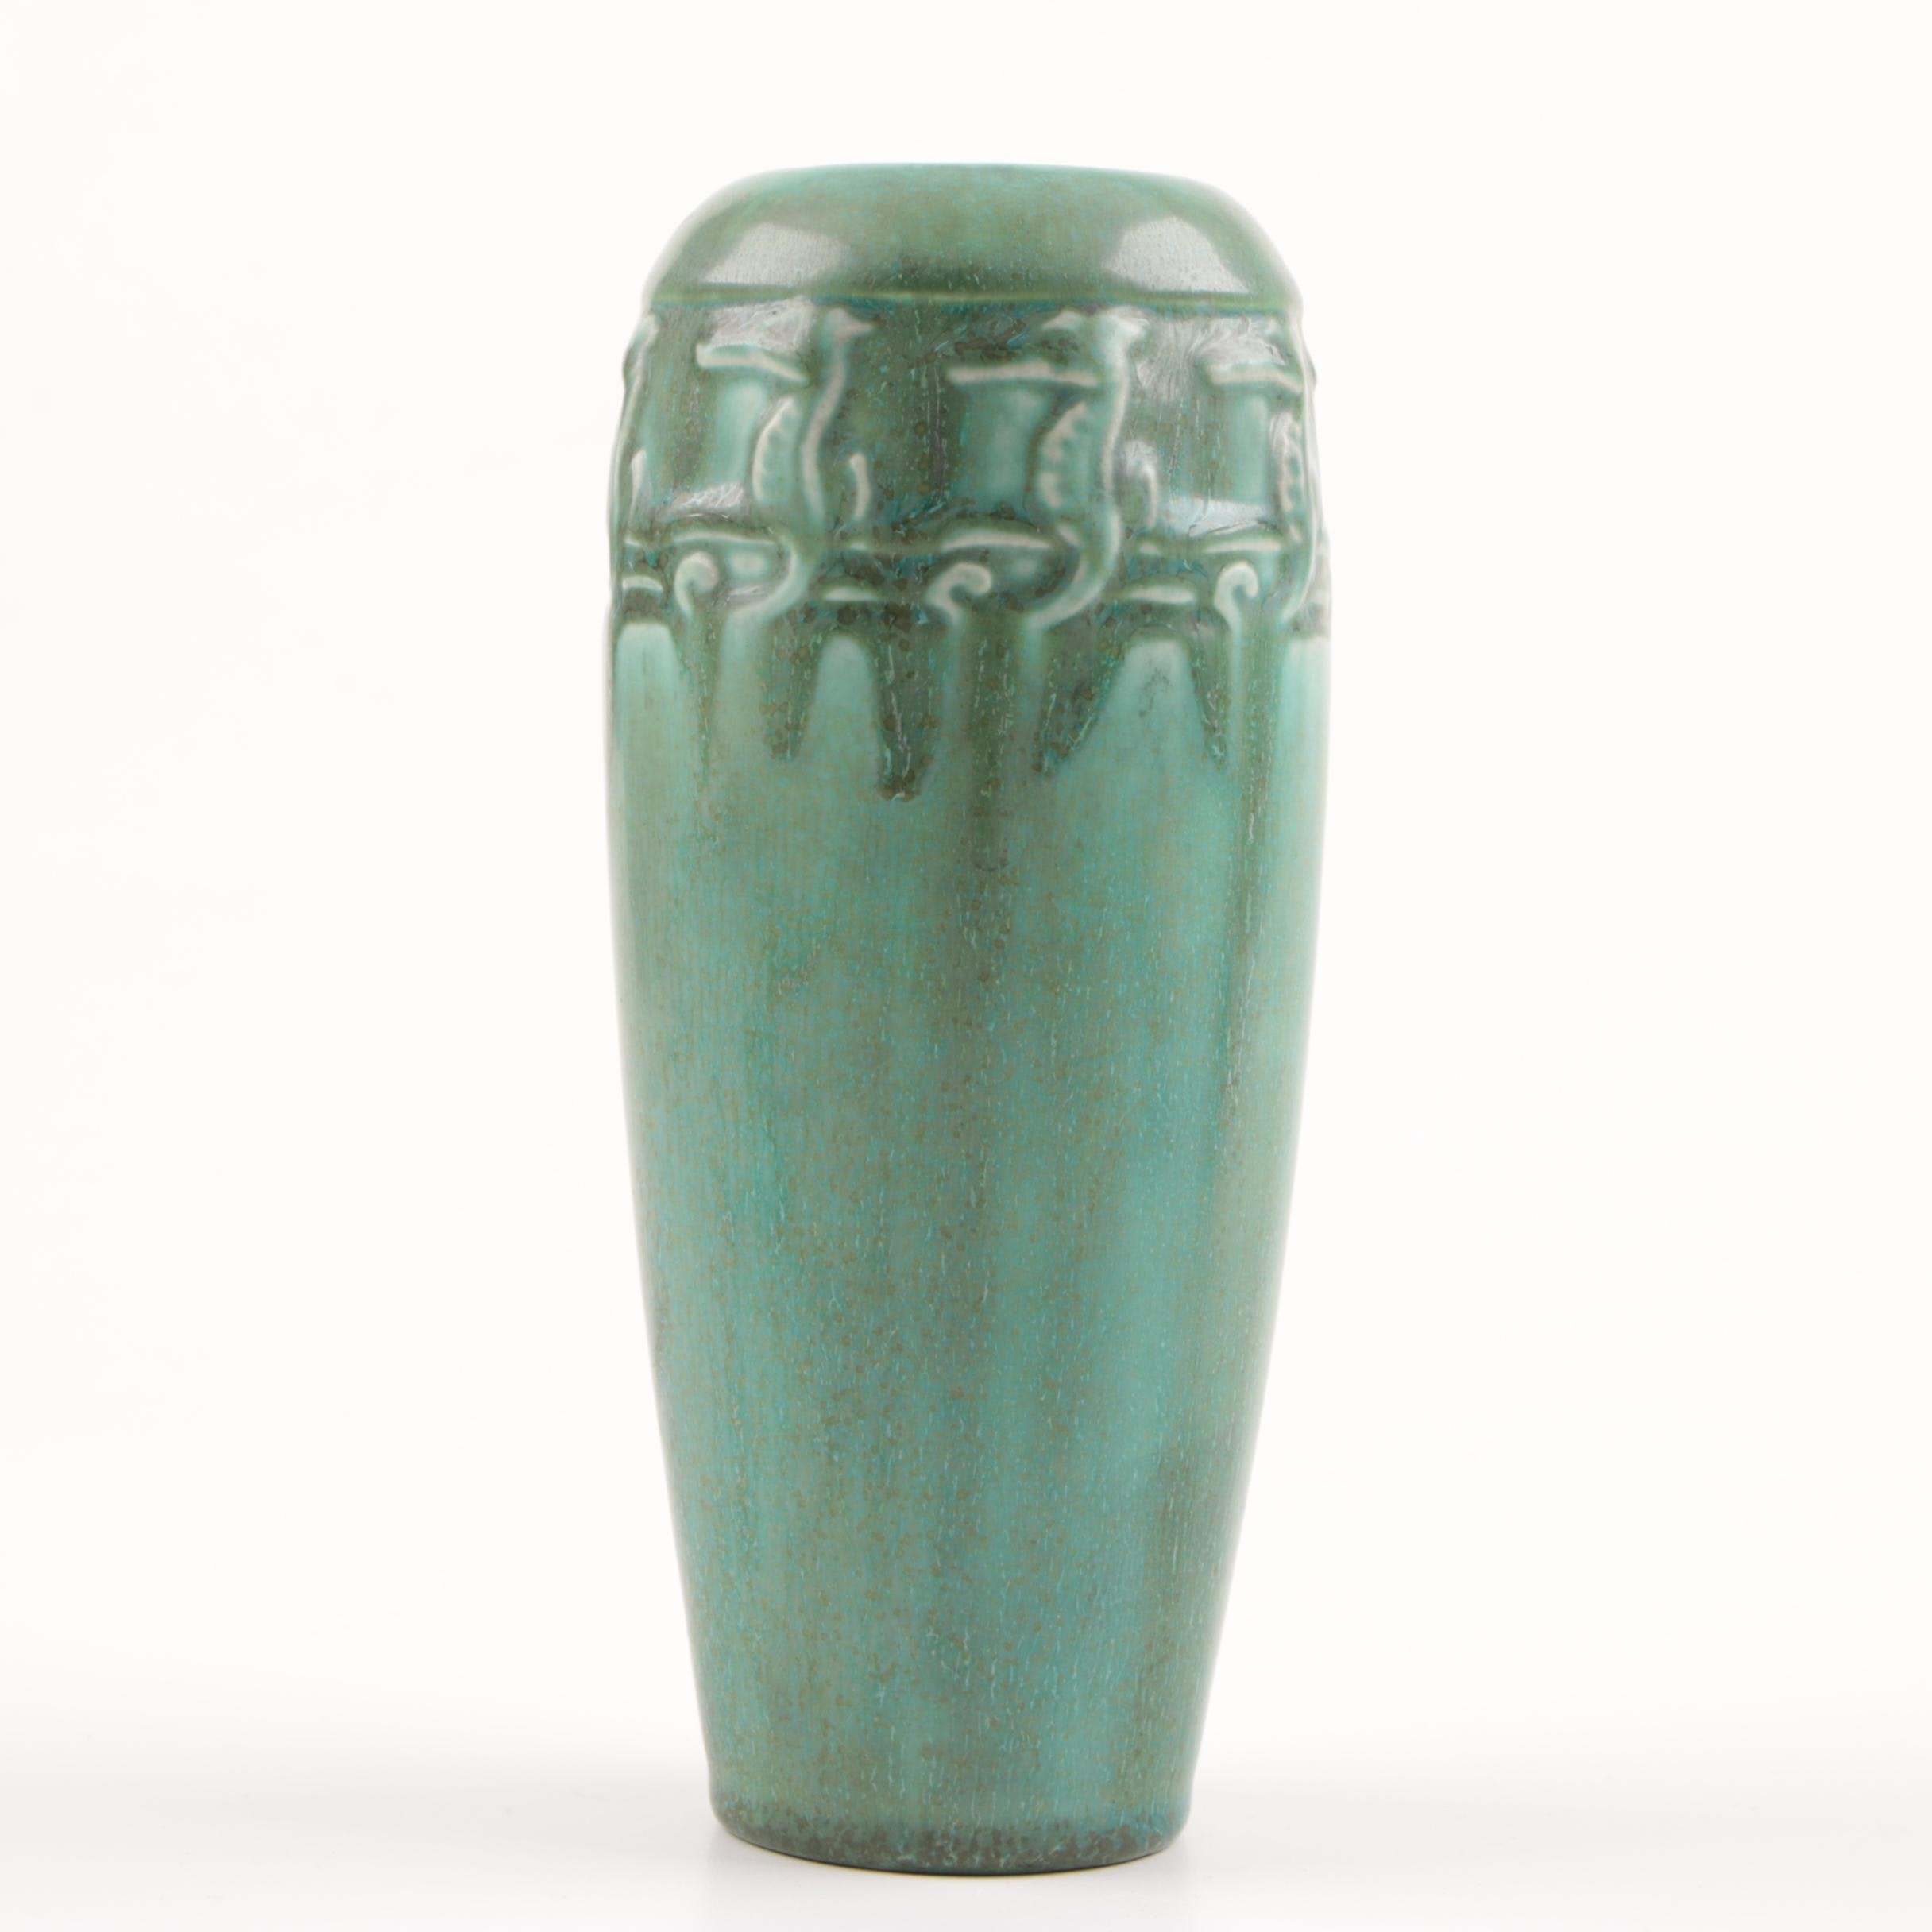 Green Rookwood Pottery Vase With Seahorse Motif, 1923